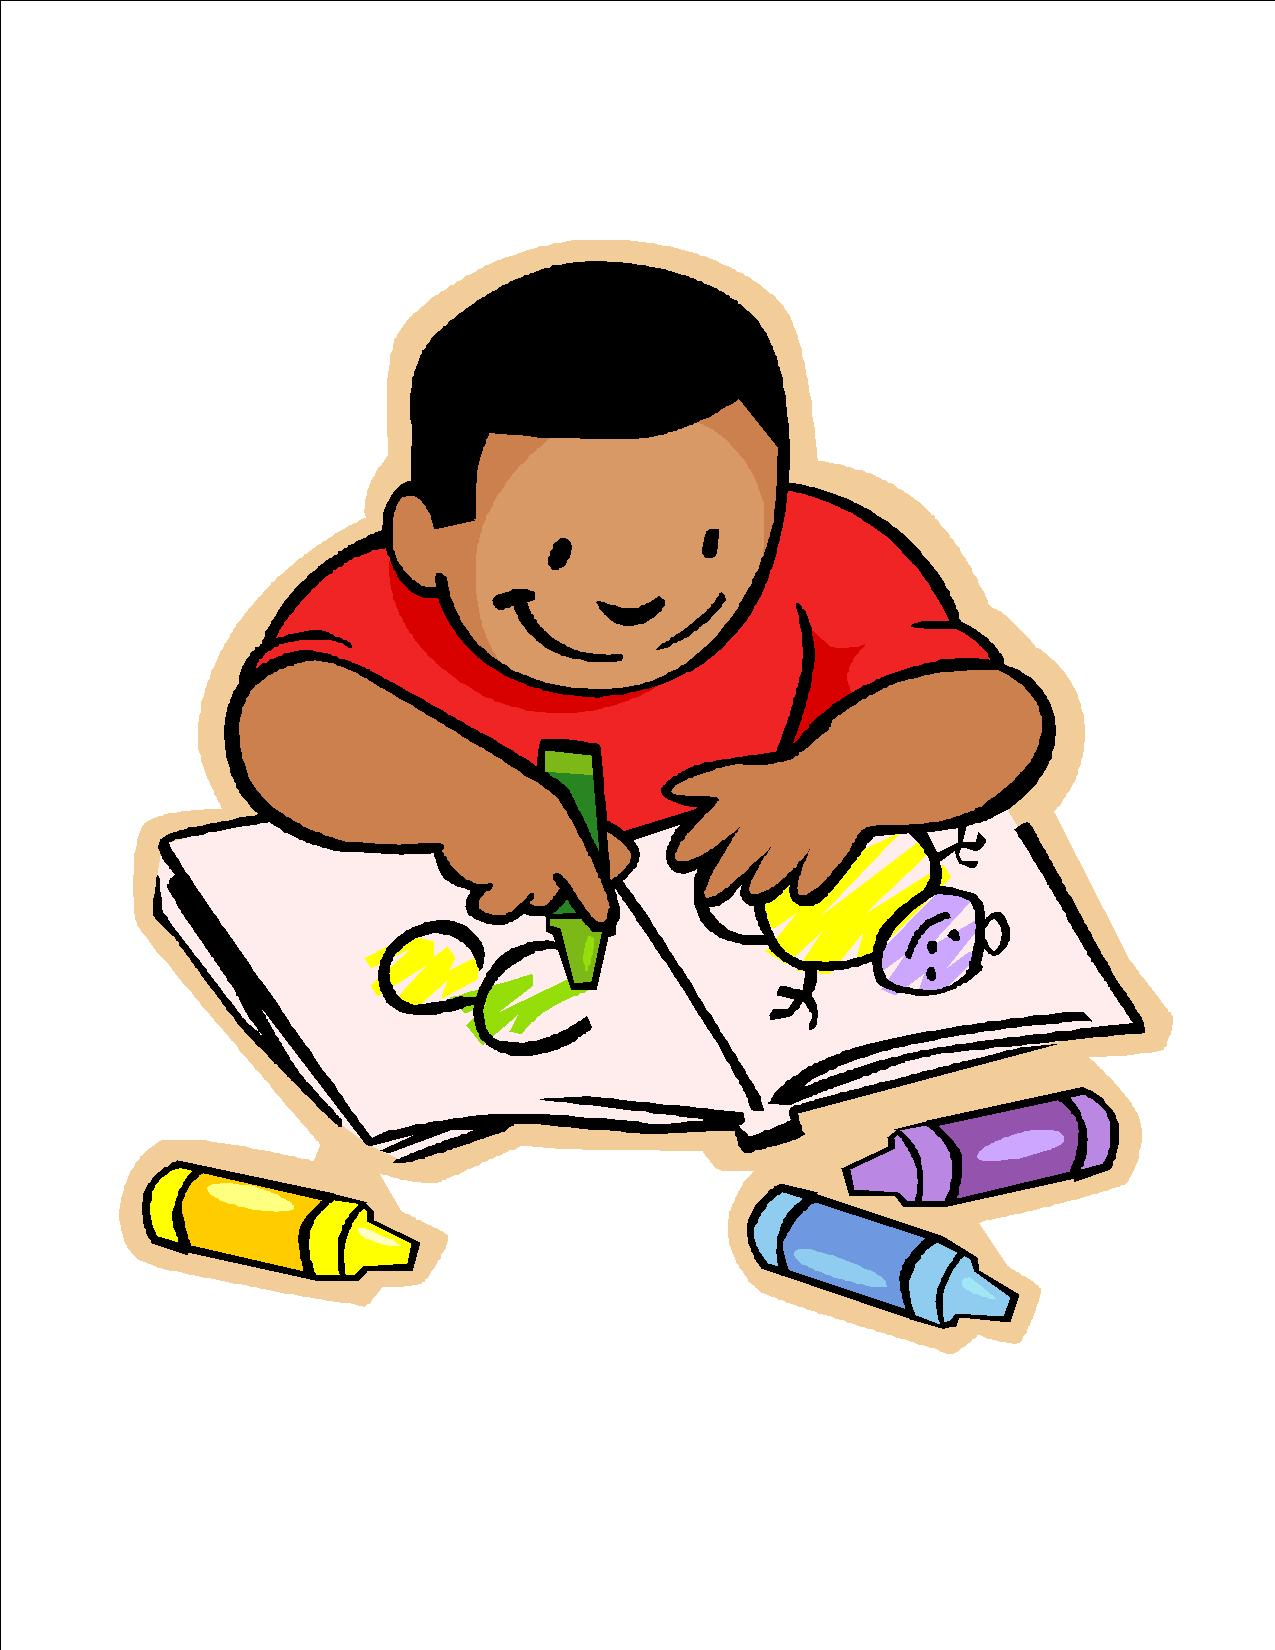 Children writing clipart independent. Free images of download